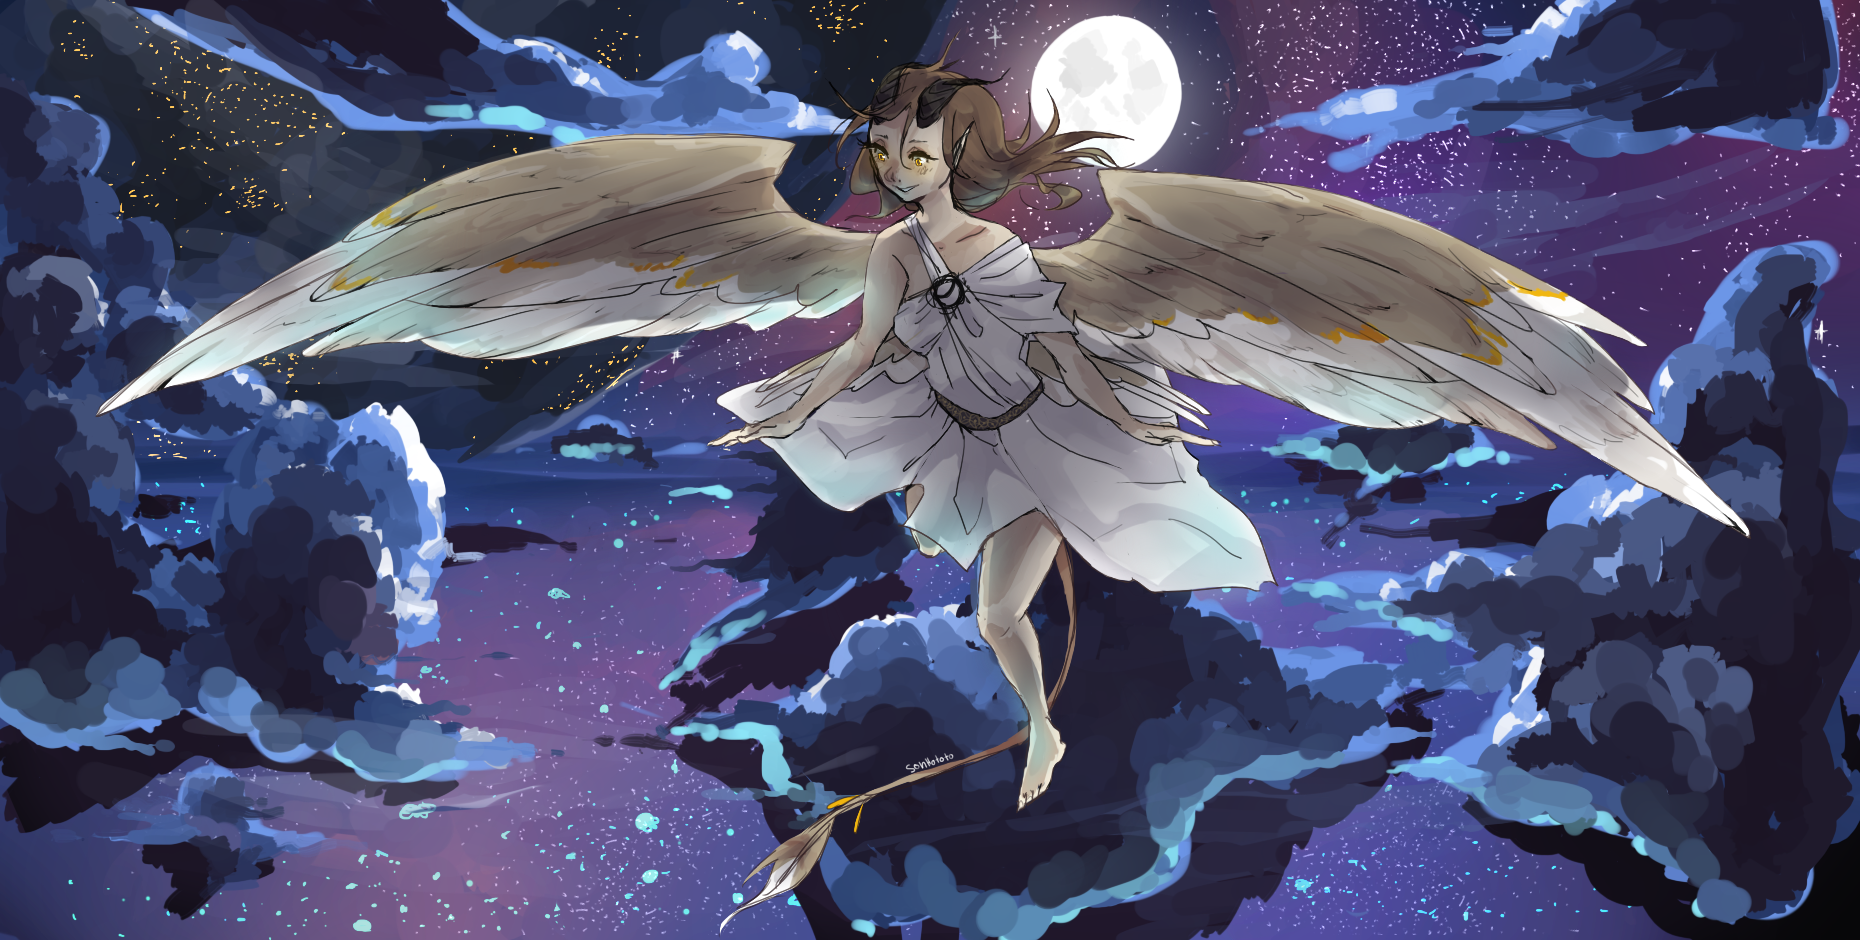 Flying Through The Night Full Of Beauty